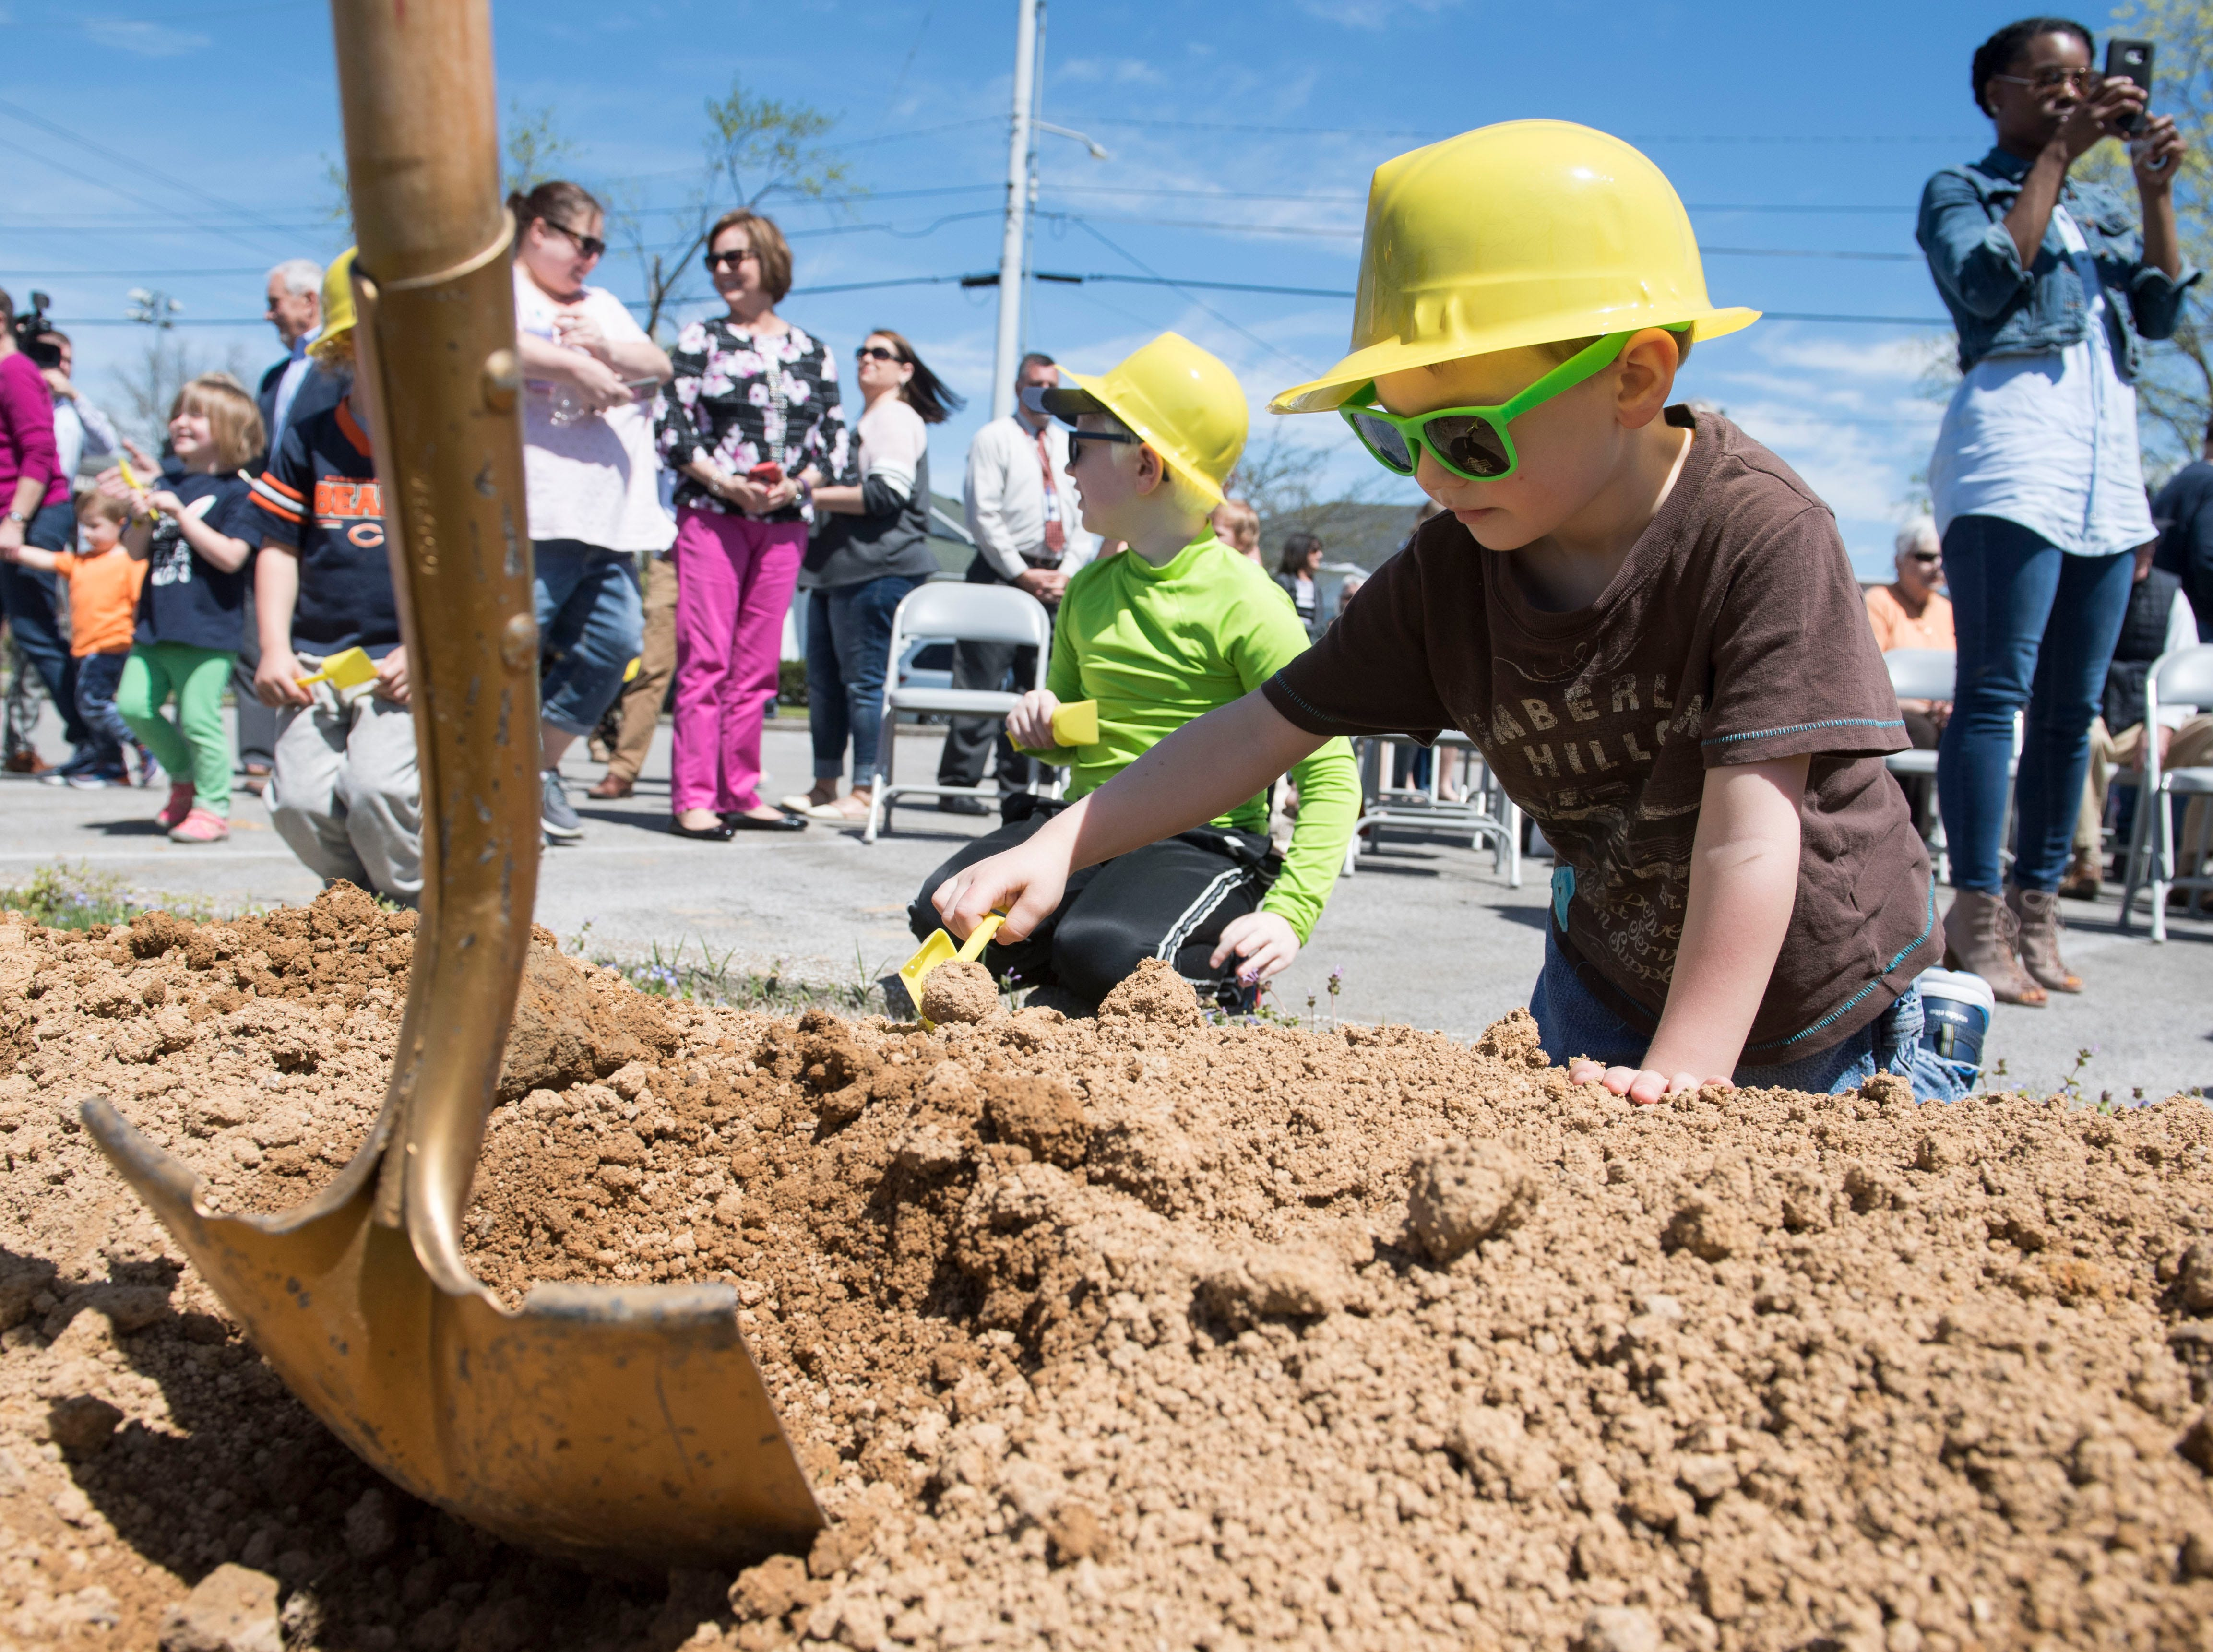 James May, Henderson County Public Library Director's son, plays in the dirt after a ground breaking of the libraries $8 million addition and renovation, Tuesday, April 9, 2019.